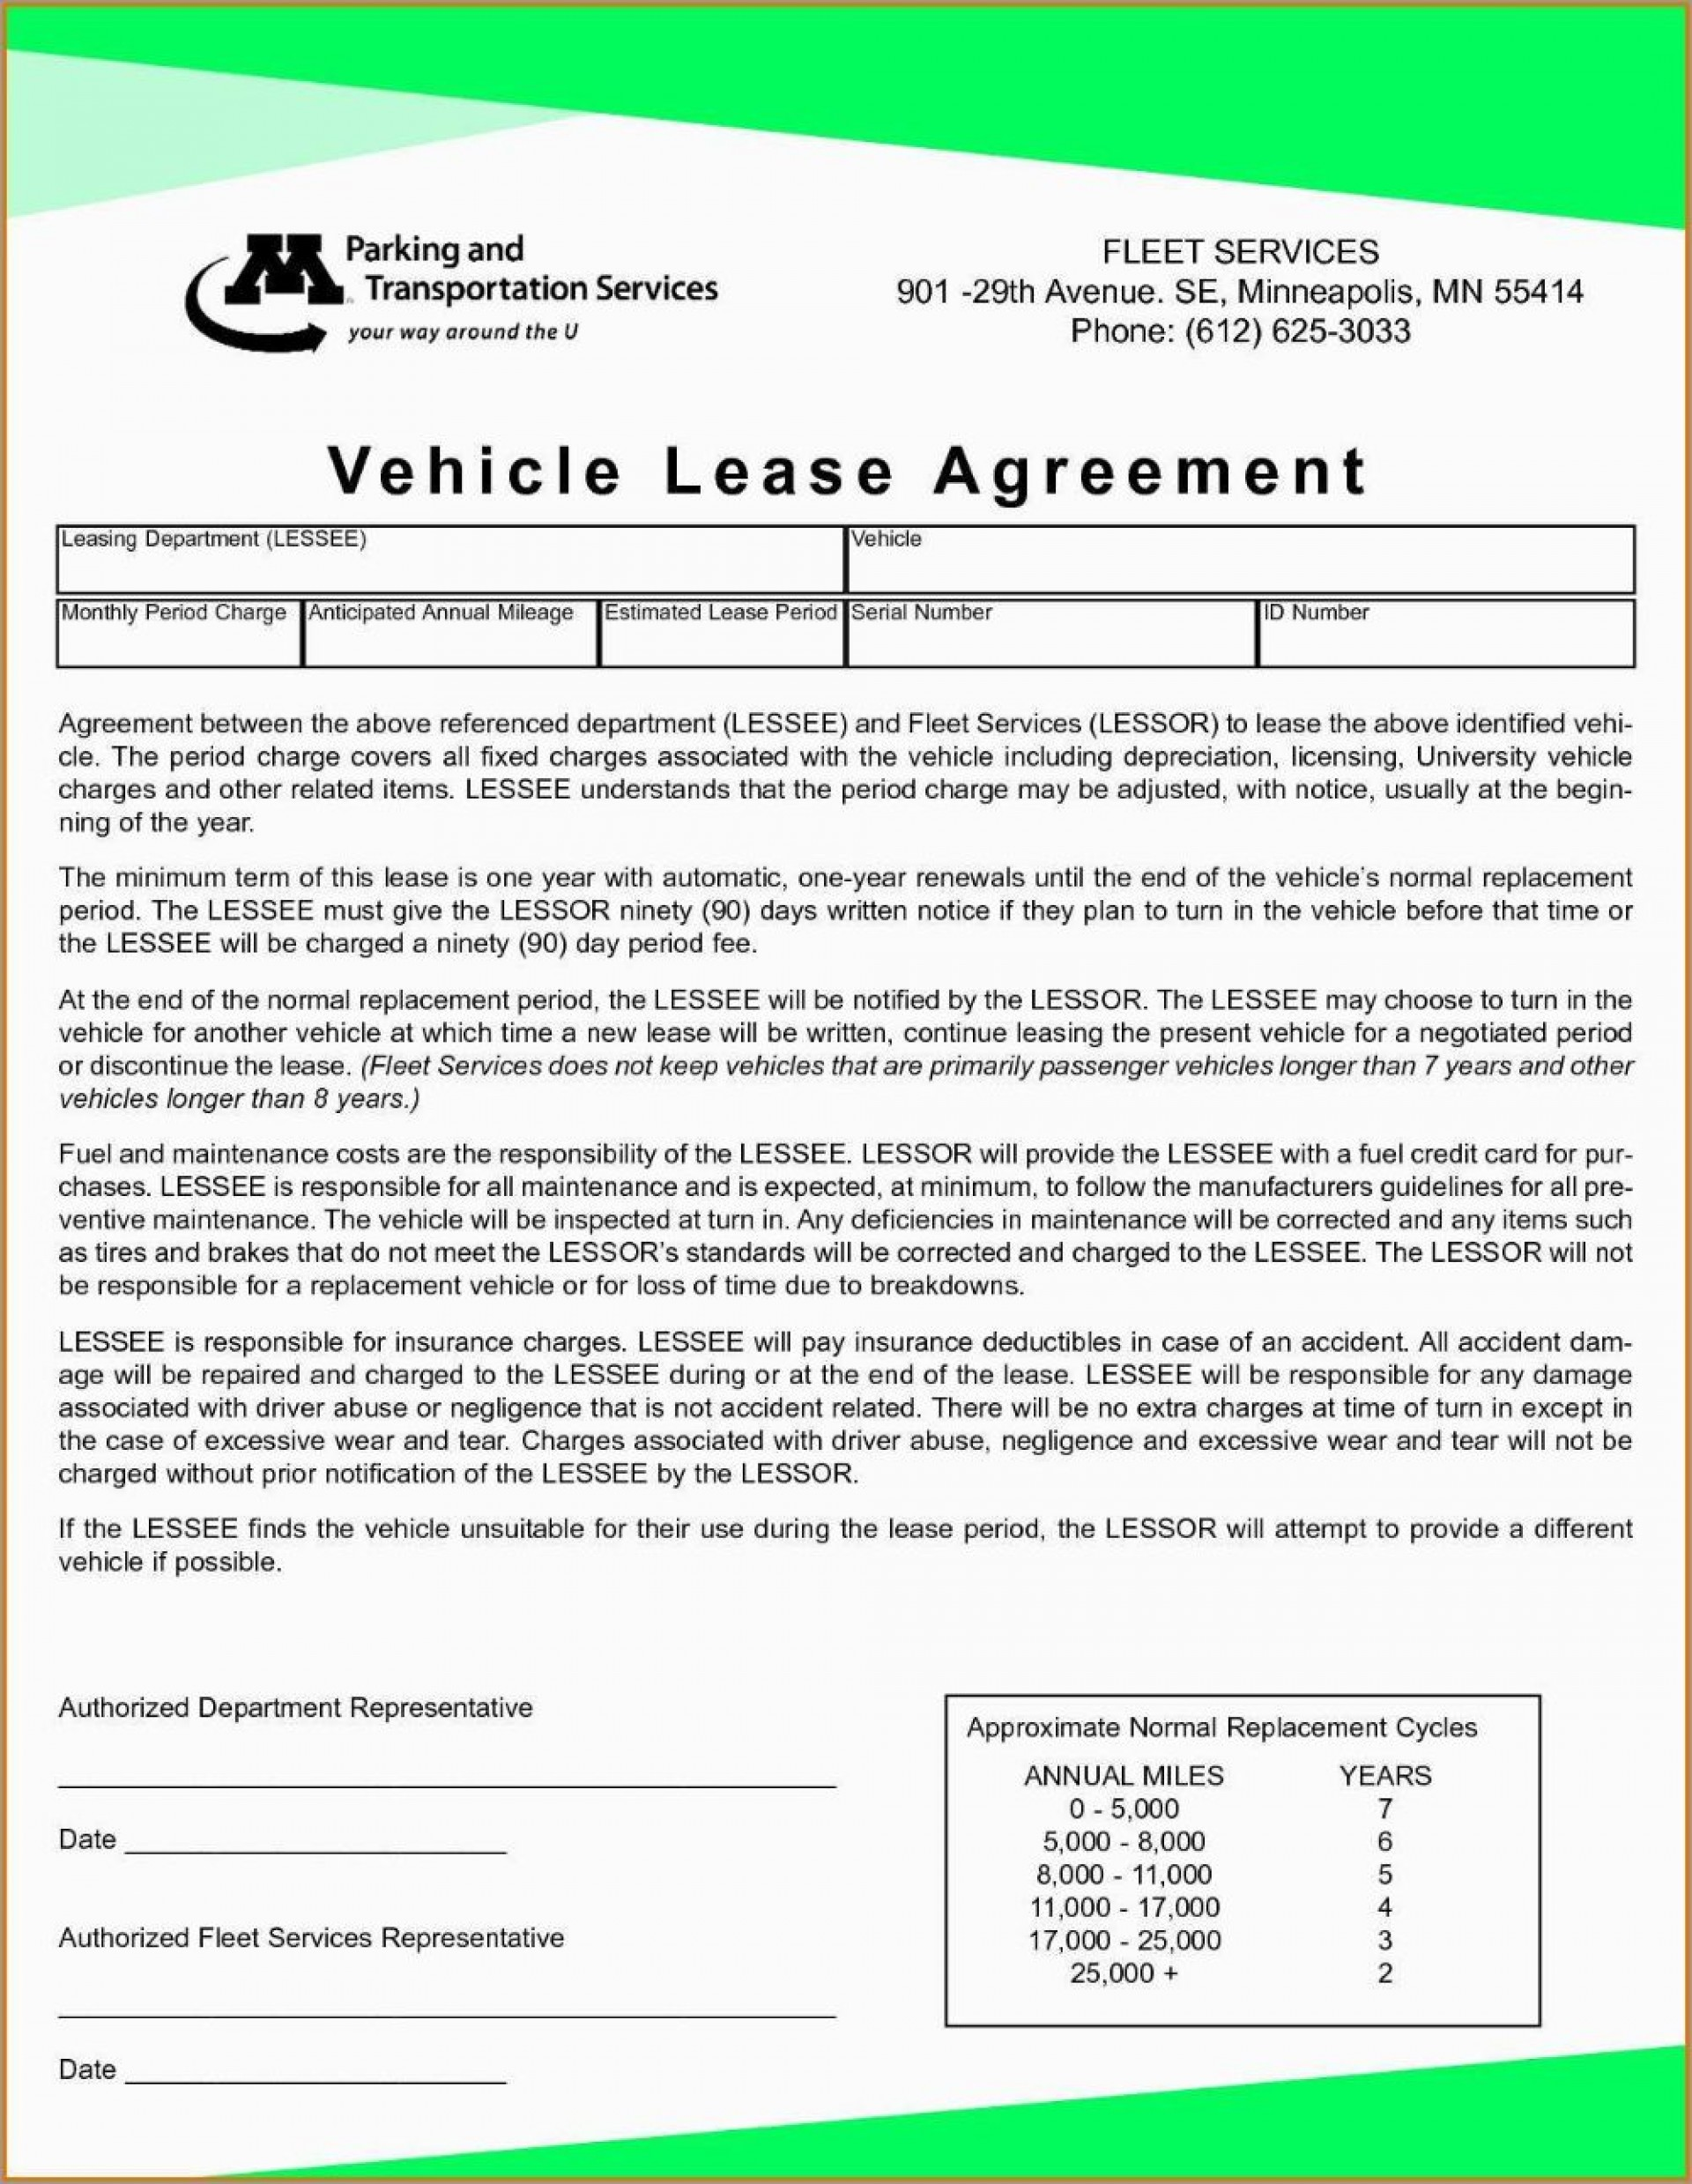 000 Striking Car Rental Agreement Template Idea  Vehicle Rent To Own South Africa Singapore1920